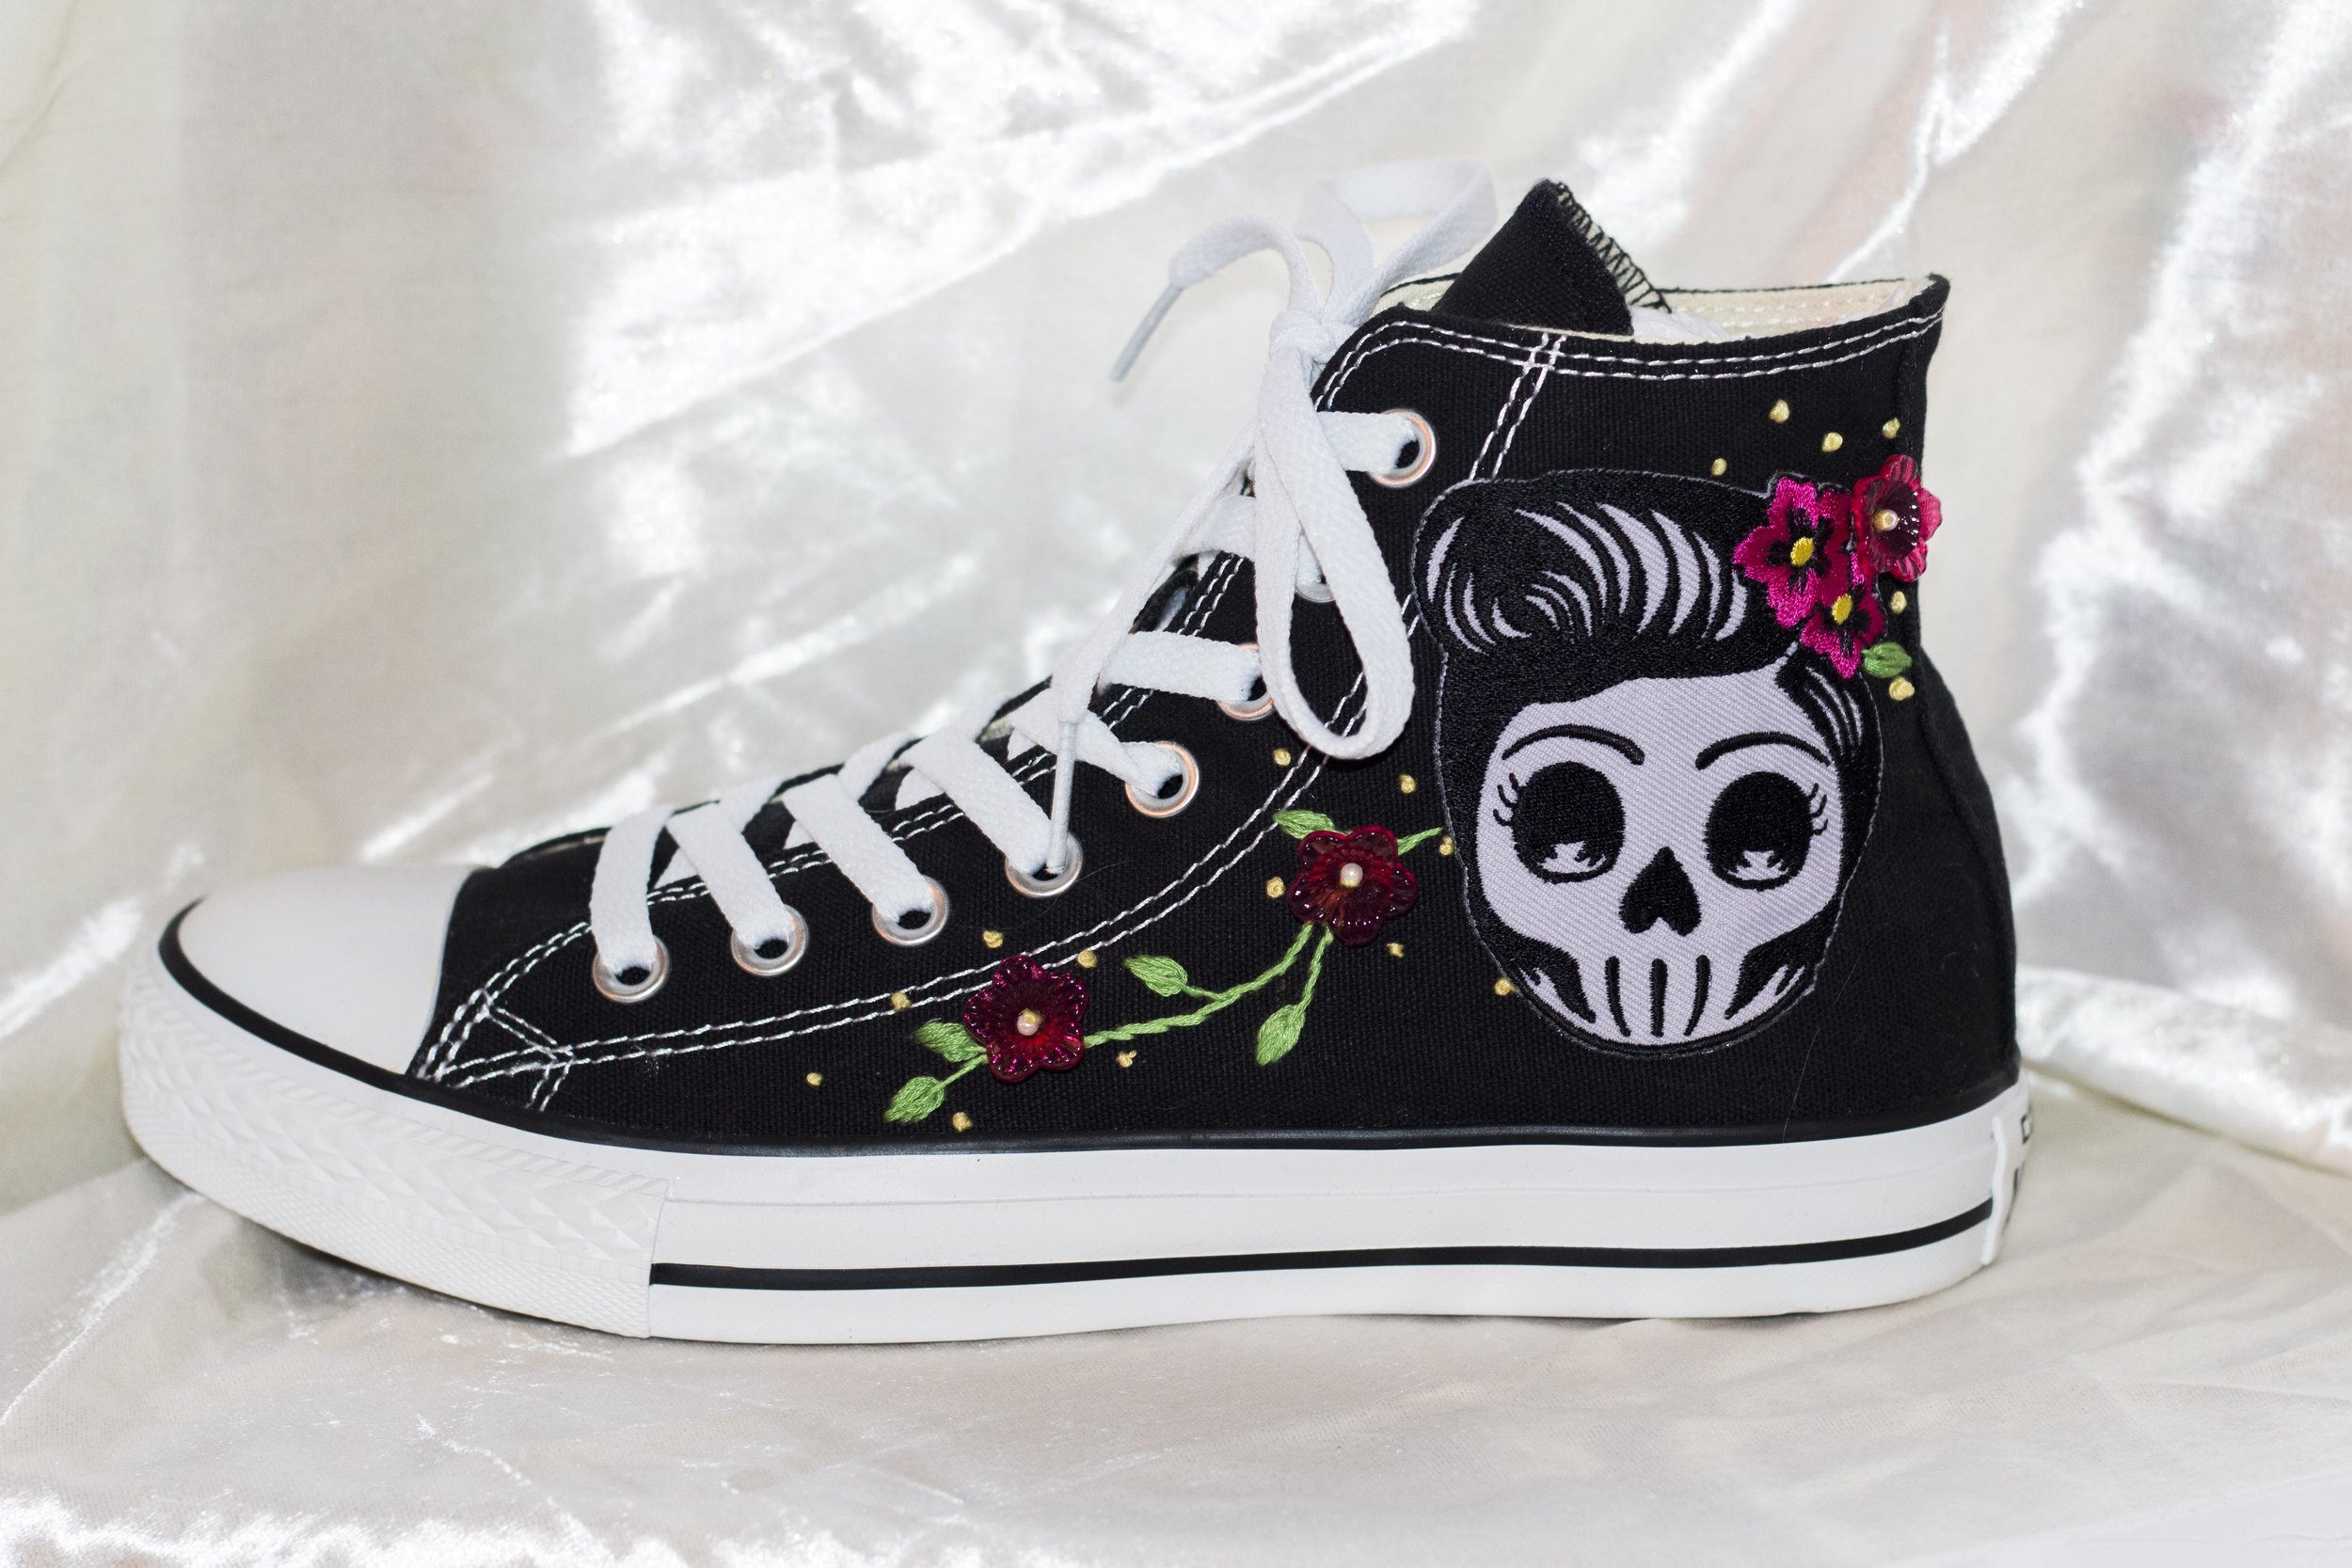 Mama Coco - Skulls and flowers, the perfect mix.